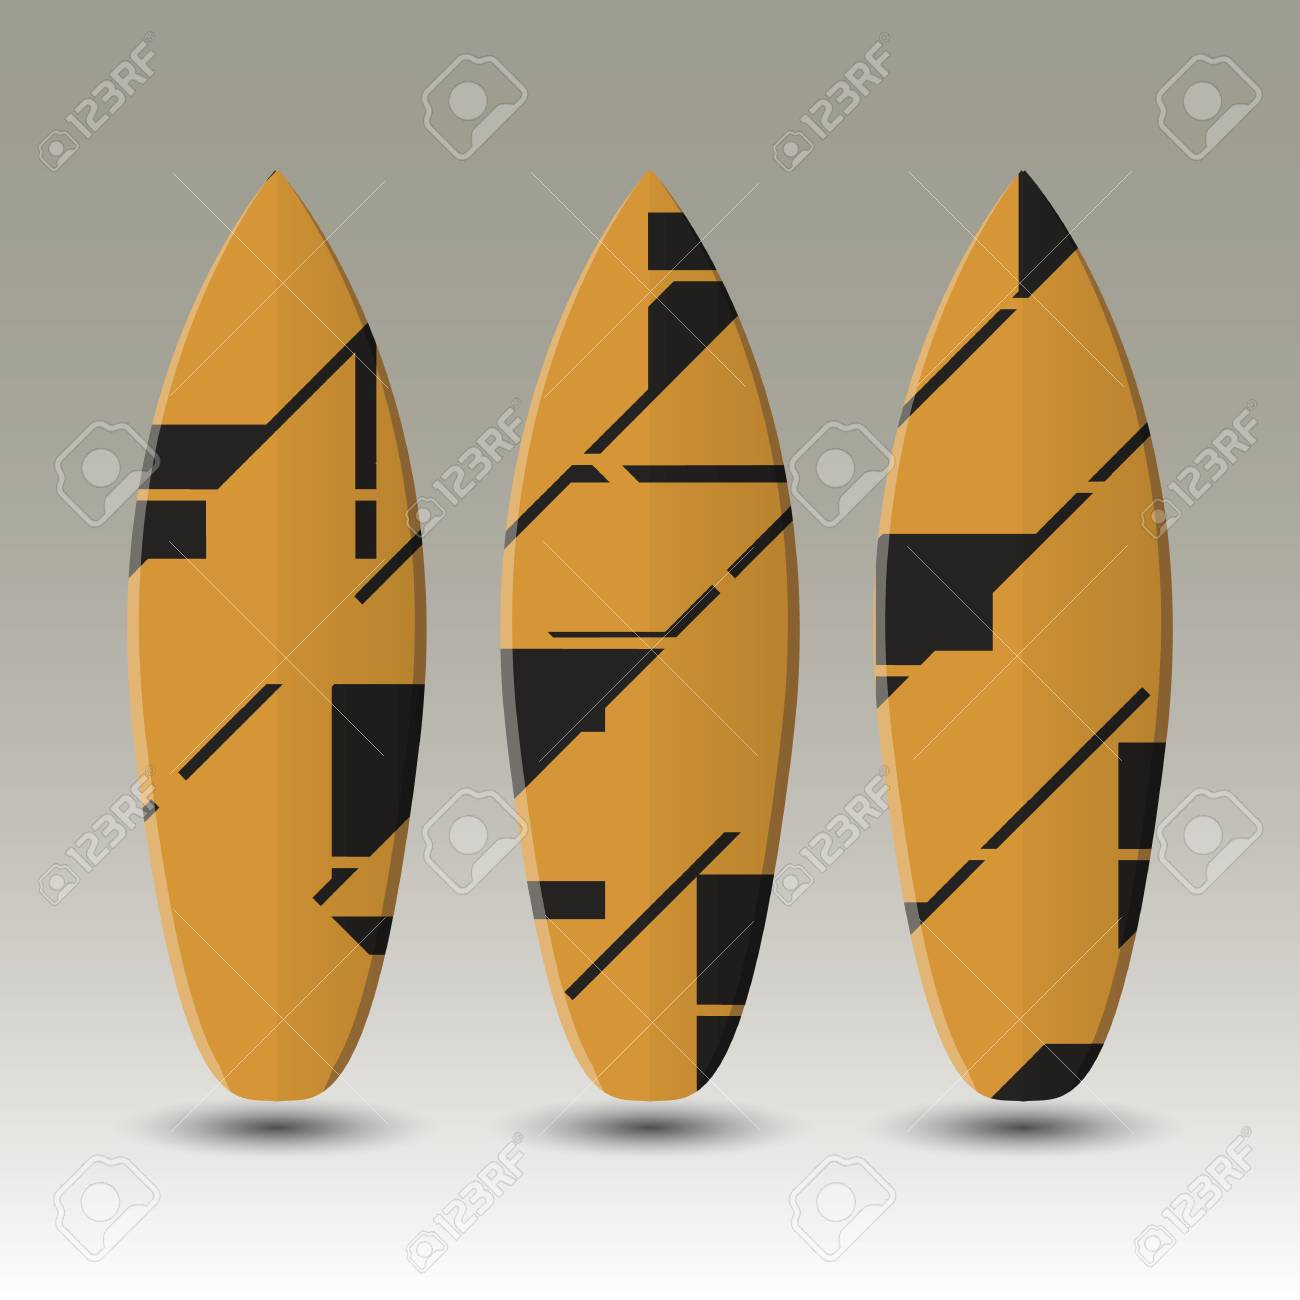 A Vector Surfboards Design With Abstract Colorful Pattern On